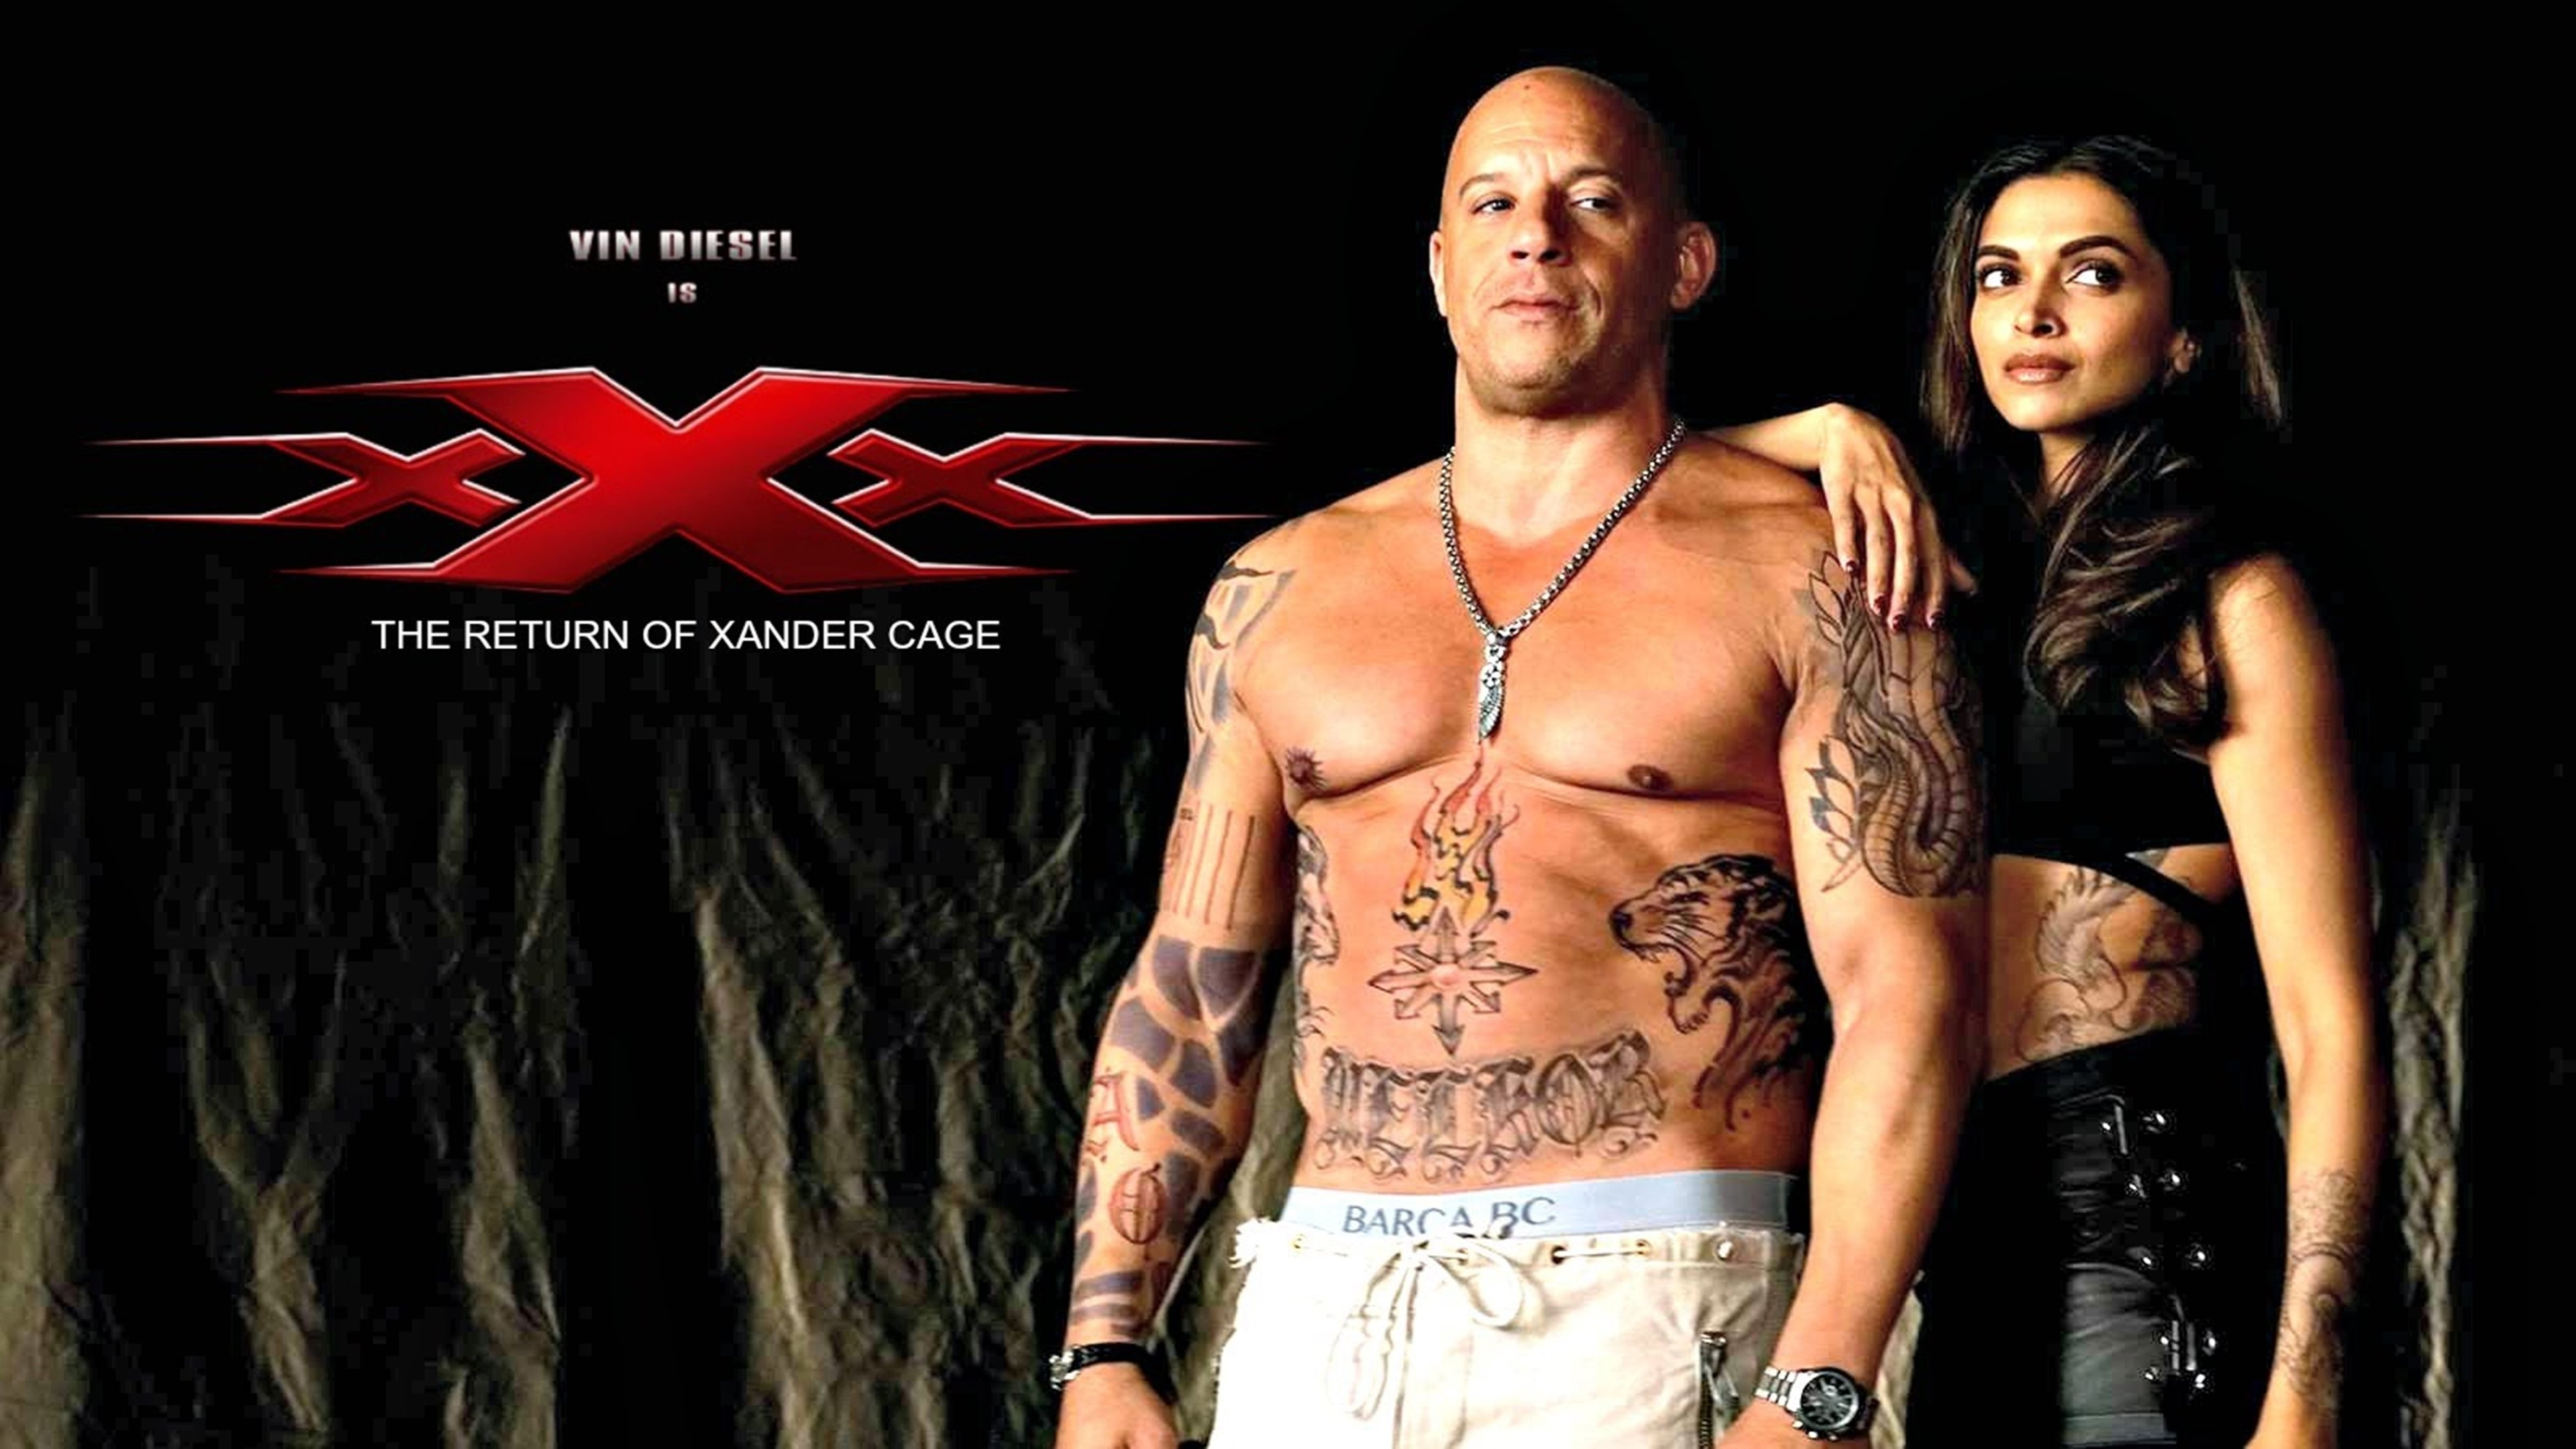 Vin diesel deepika padukone in xxx the return movie